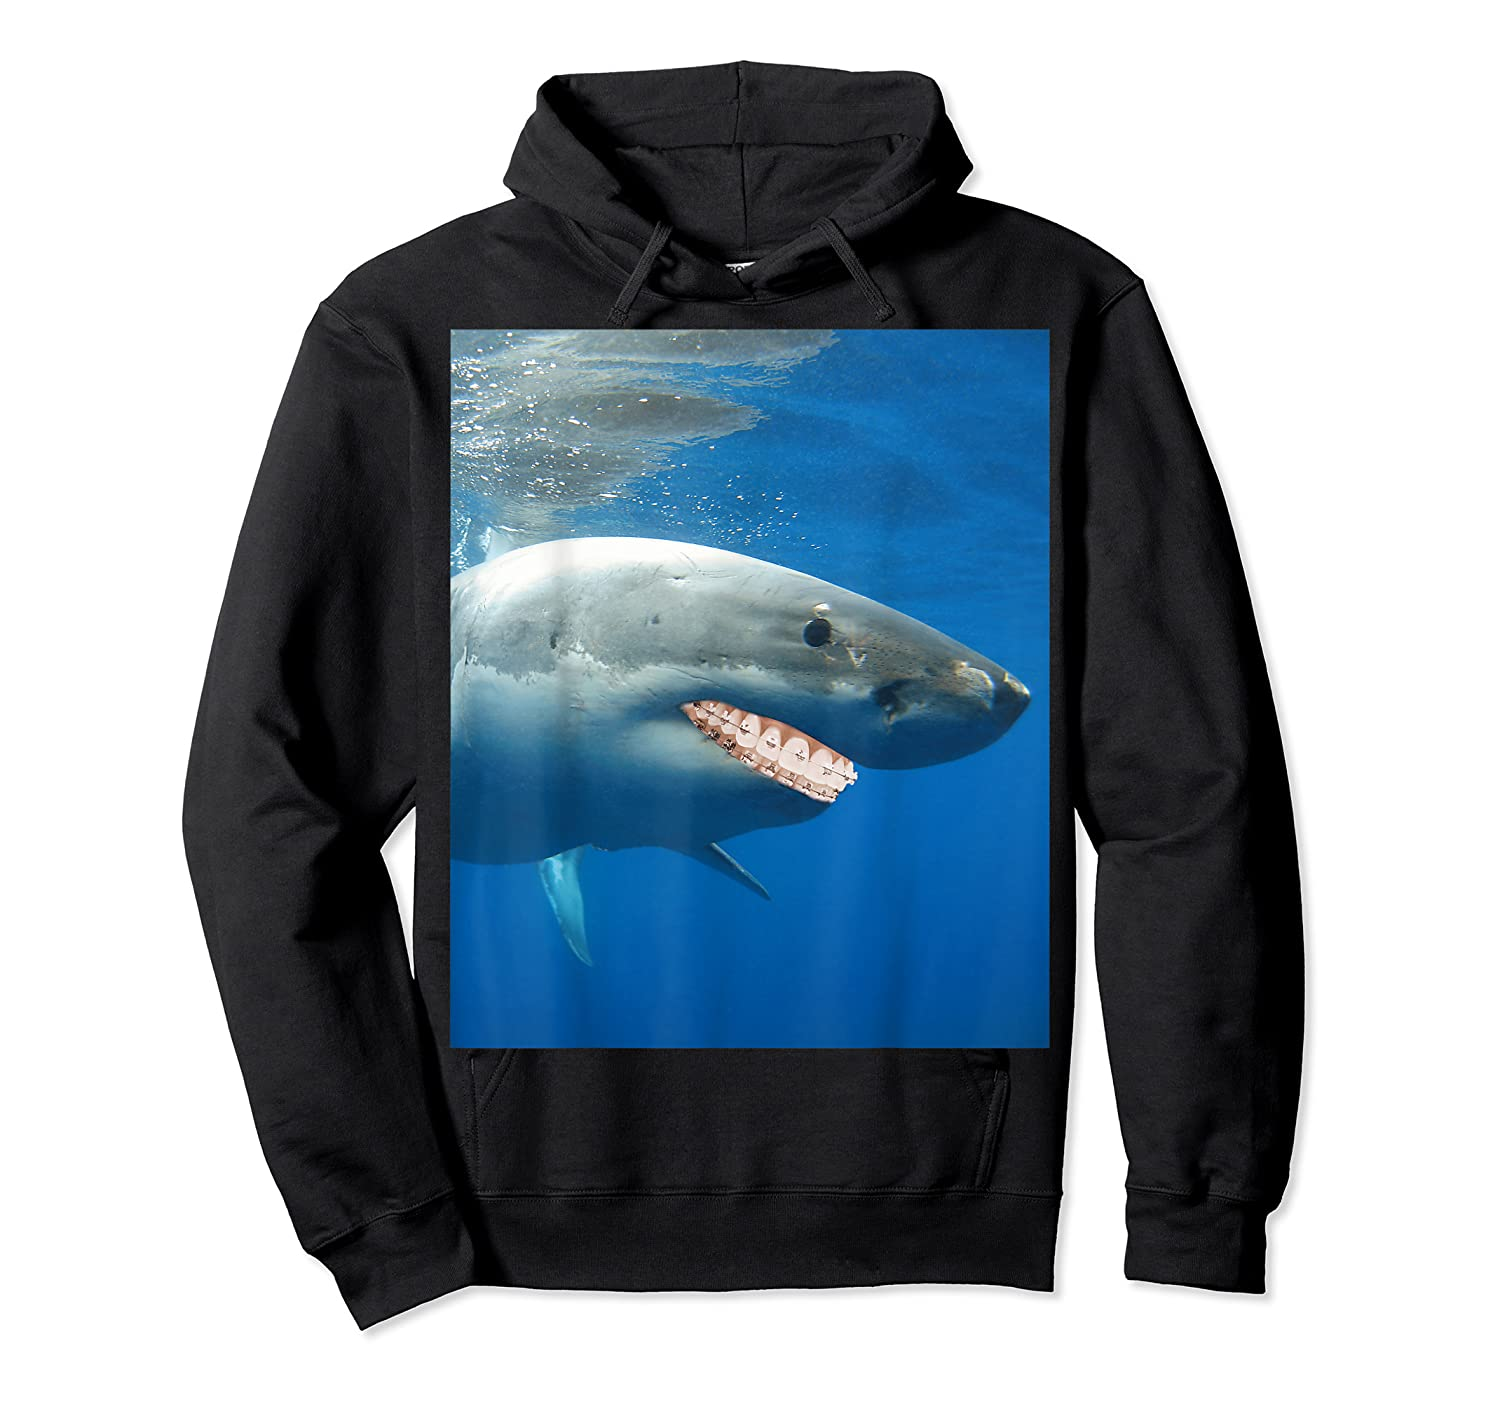 Great Shark With Braces And Human Th Shirts Unisex Pullover Hoodie